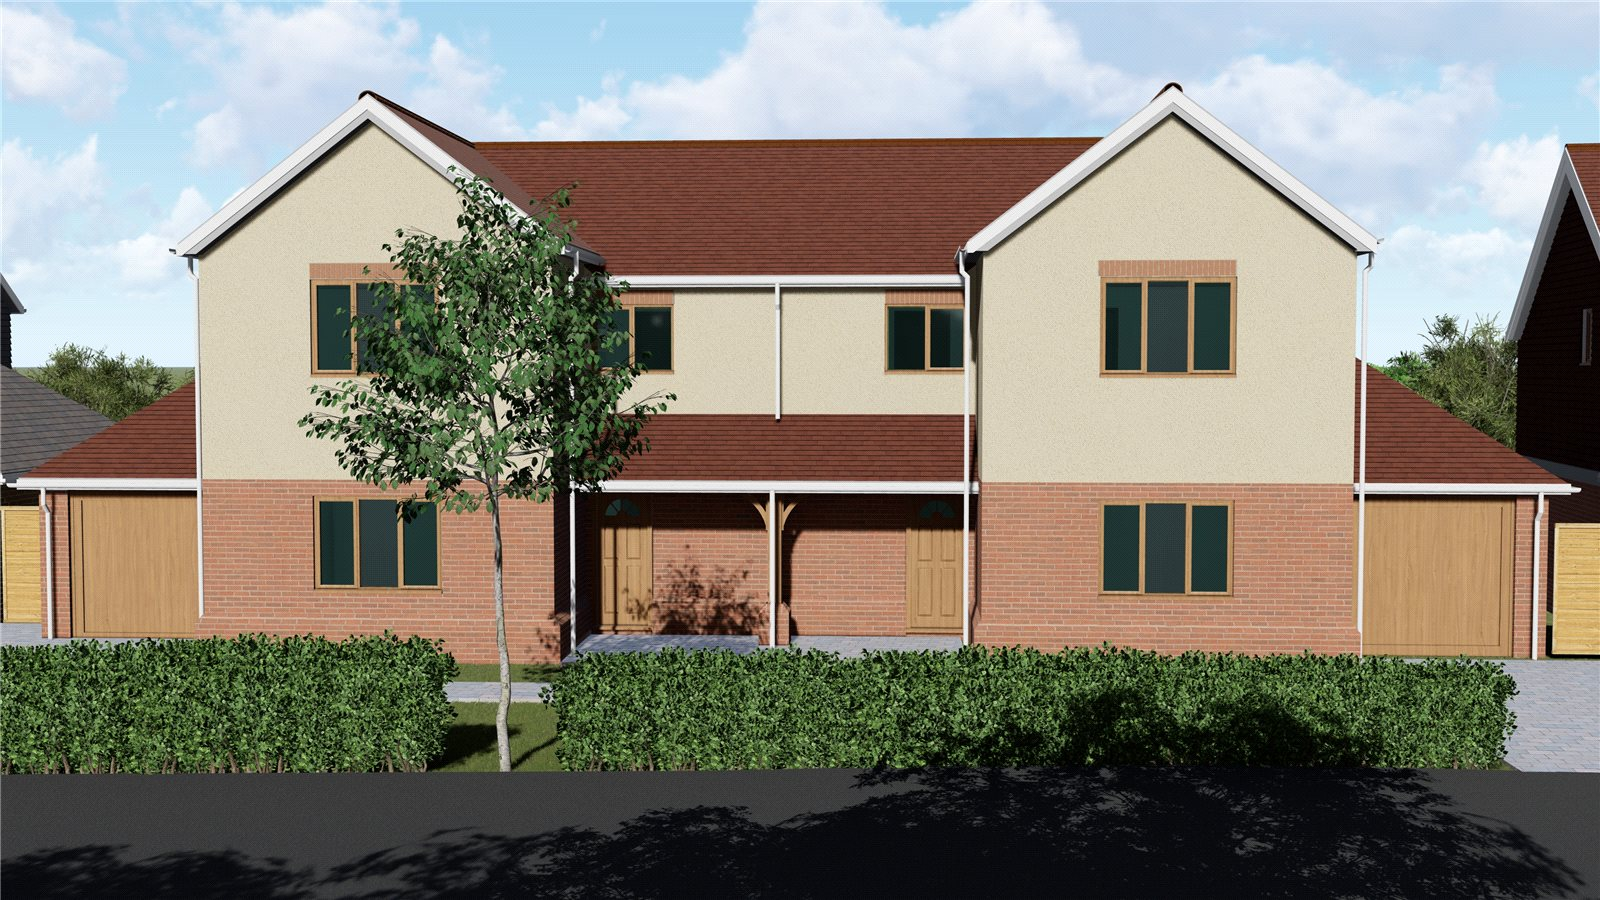 3 bed house for sale in Starlings View, Arundel Road, Angmering, BN16